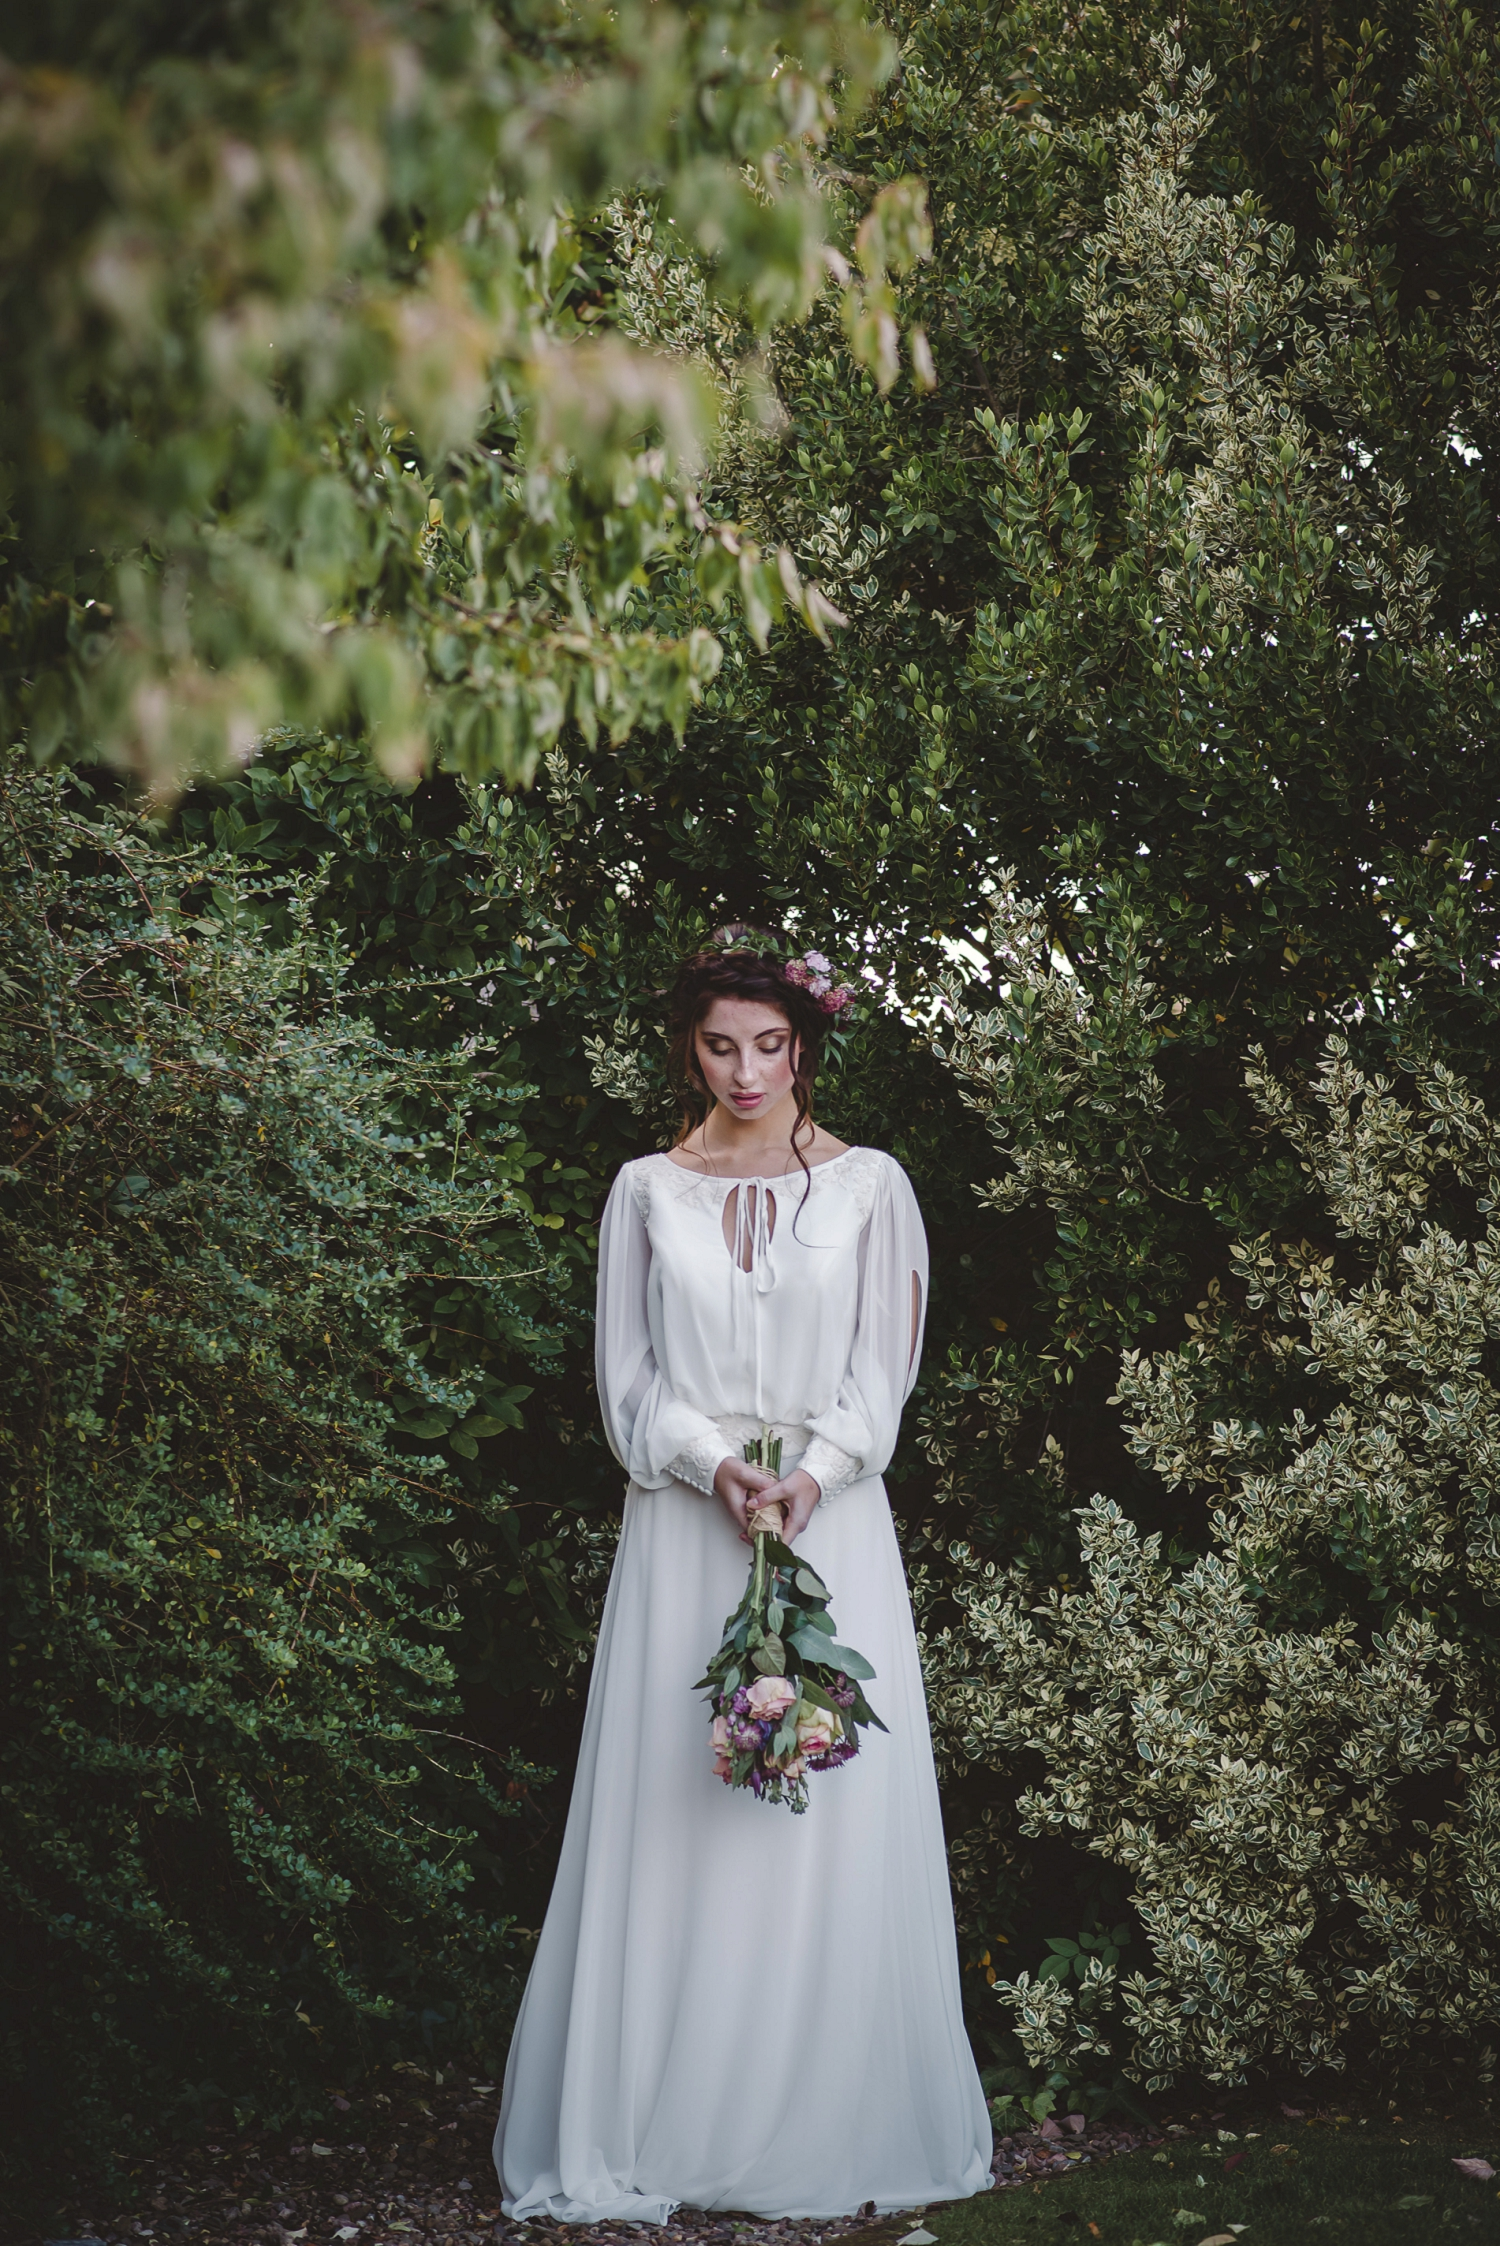 Curradine_bridal_Sept_17_amytiphoto_0071.jpg